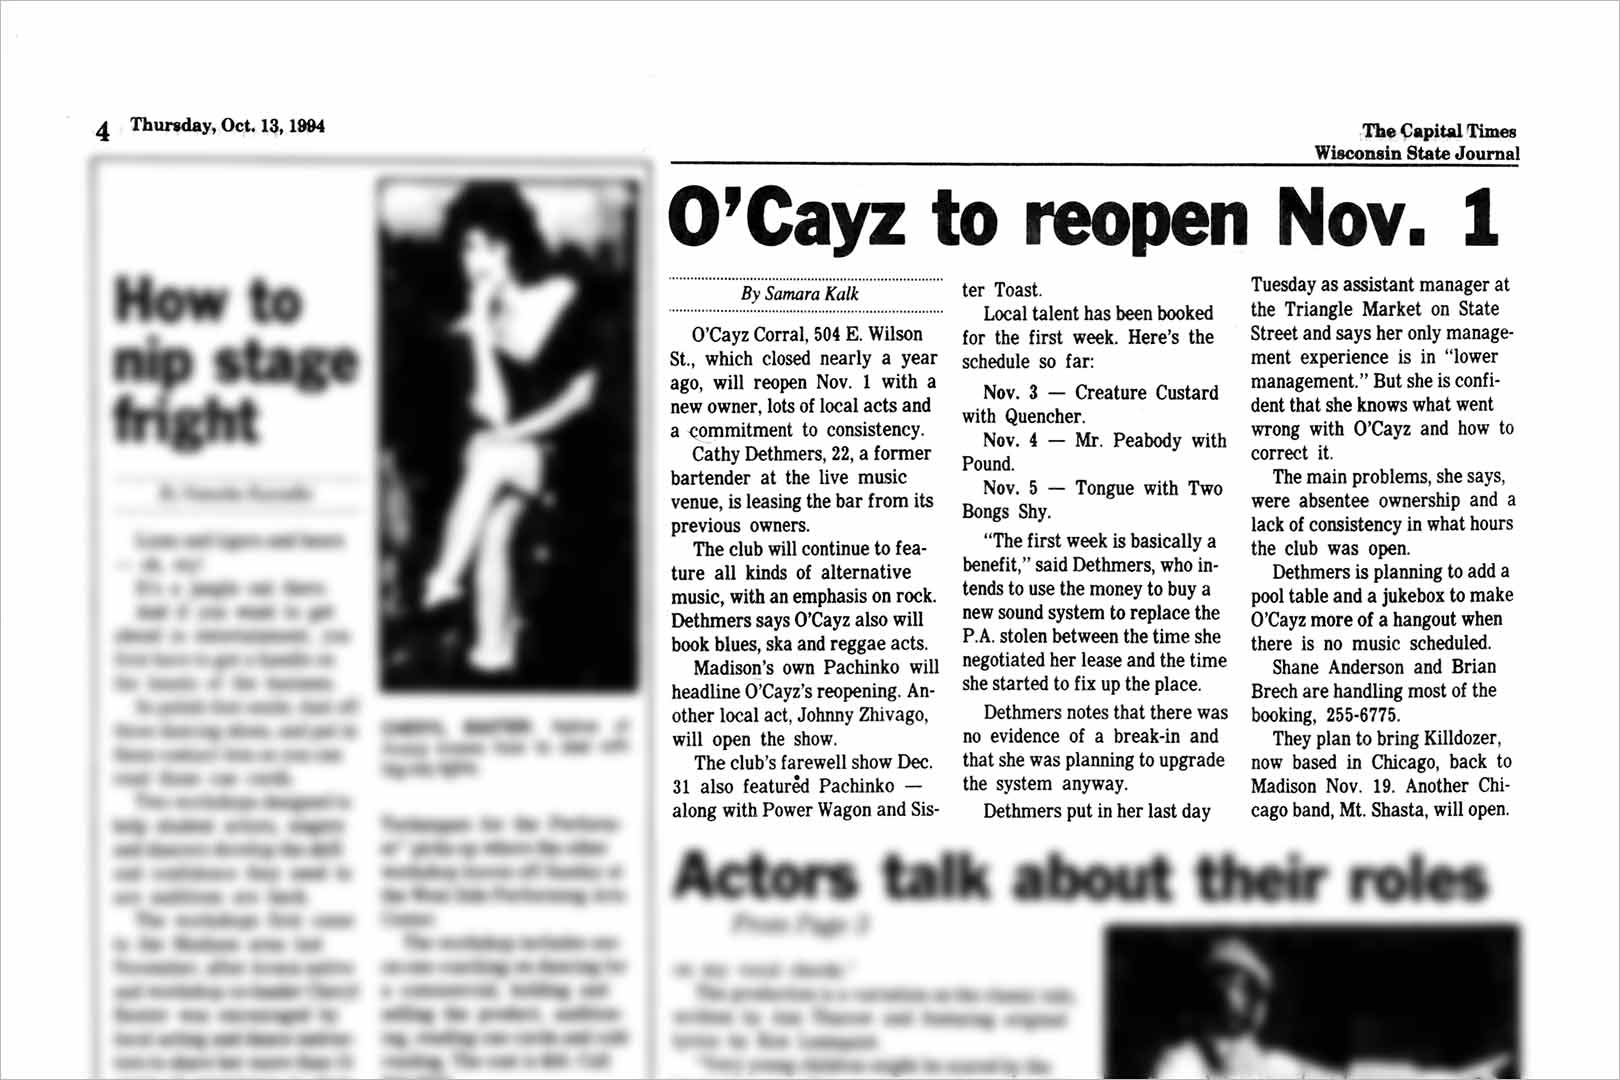 O'Cayz to reopen Nov. 1